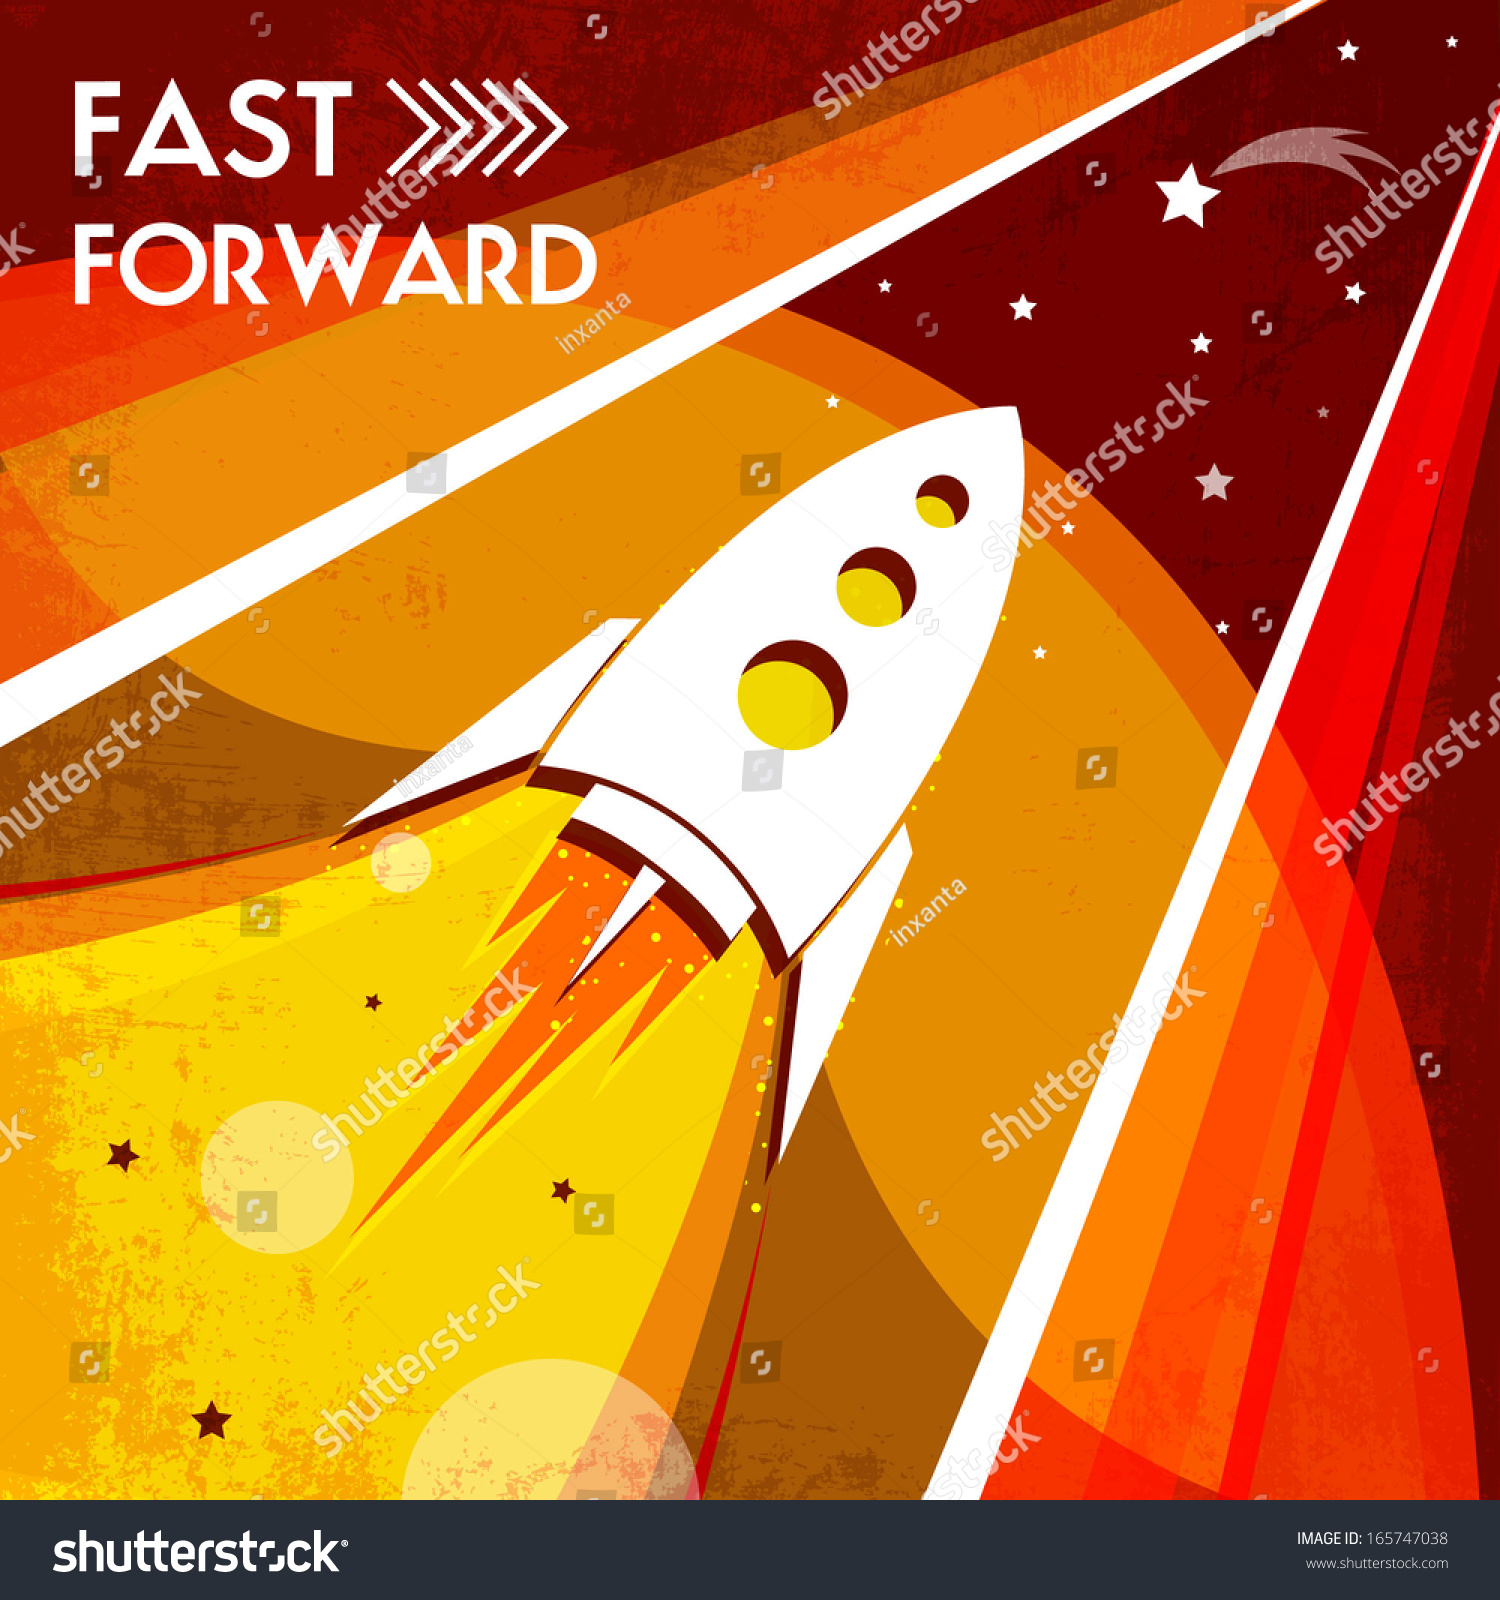 Beautiful design poster on space theme stock vector for Space poster design